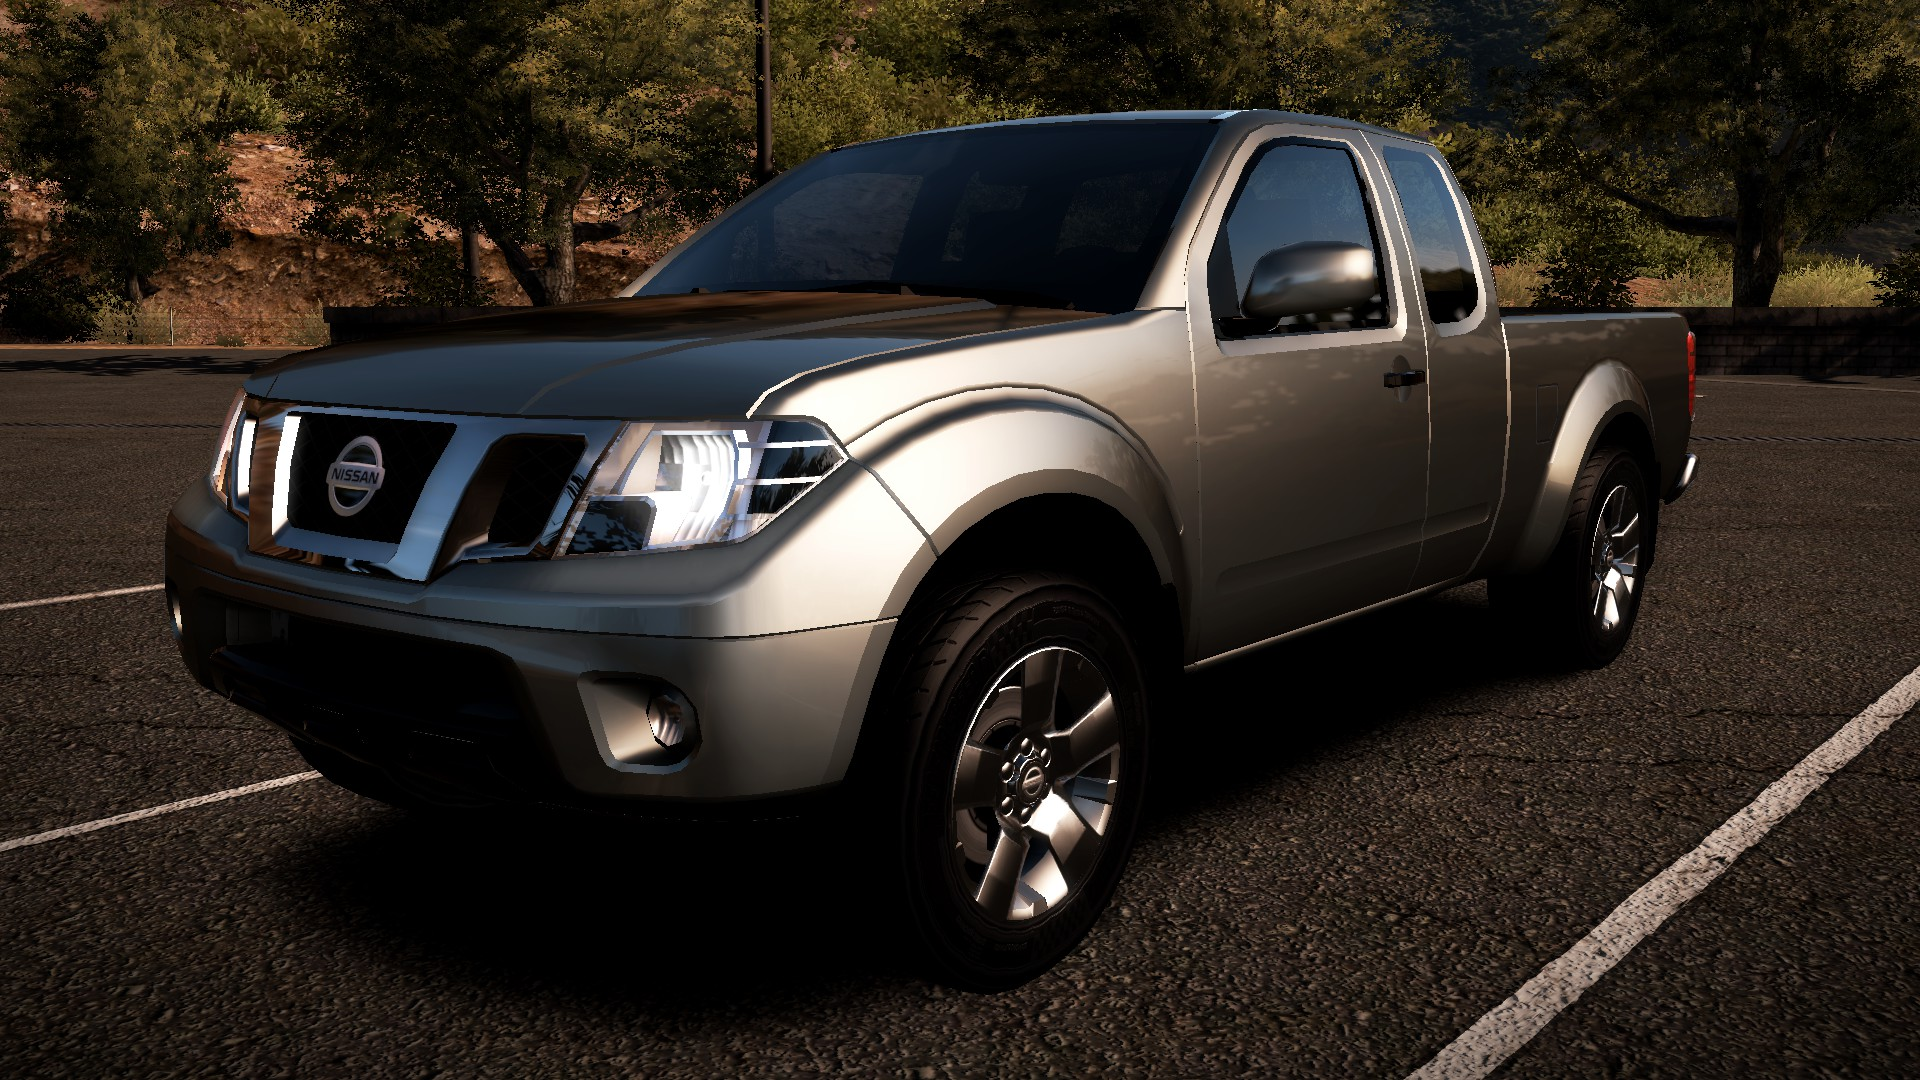 frontier driver and reviews in model nissan warranty s depth car review original photo page